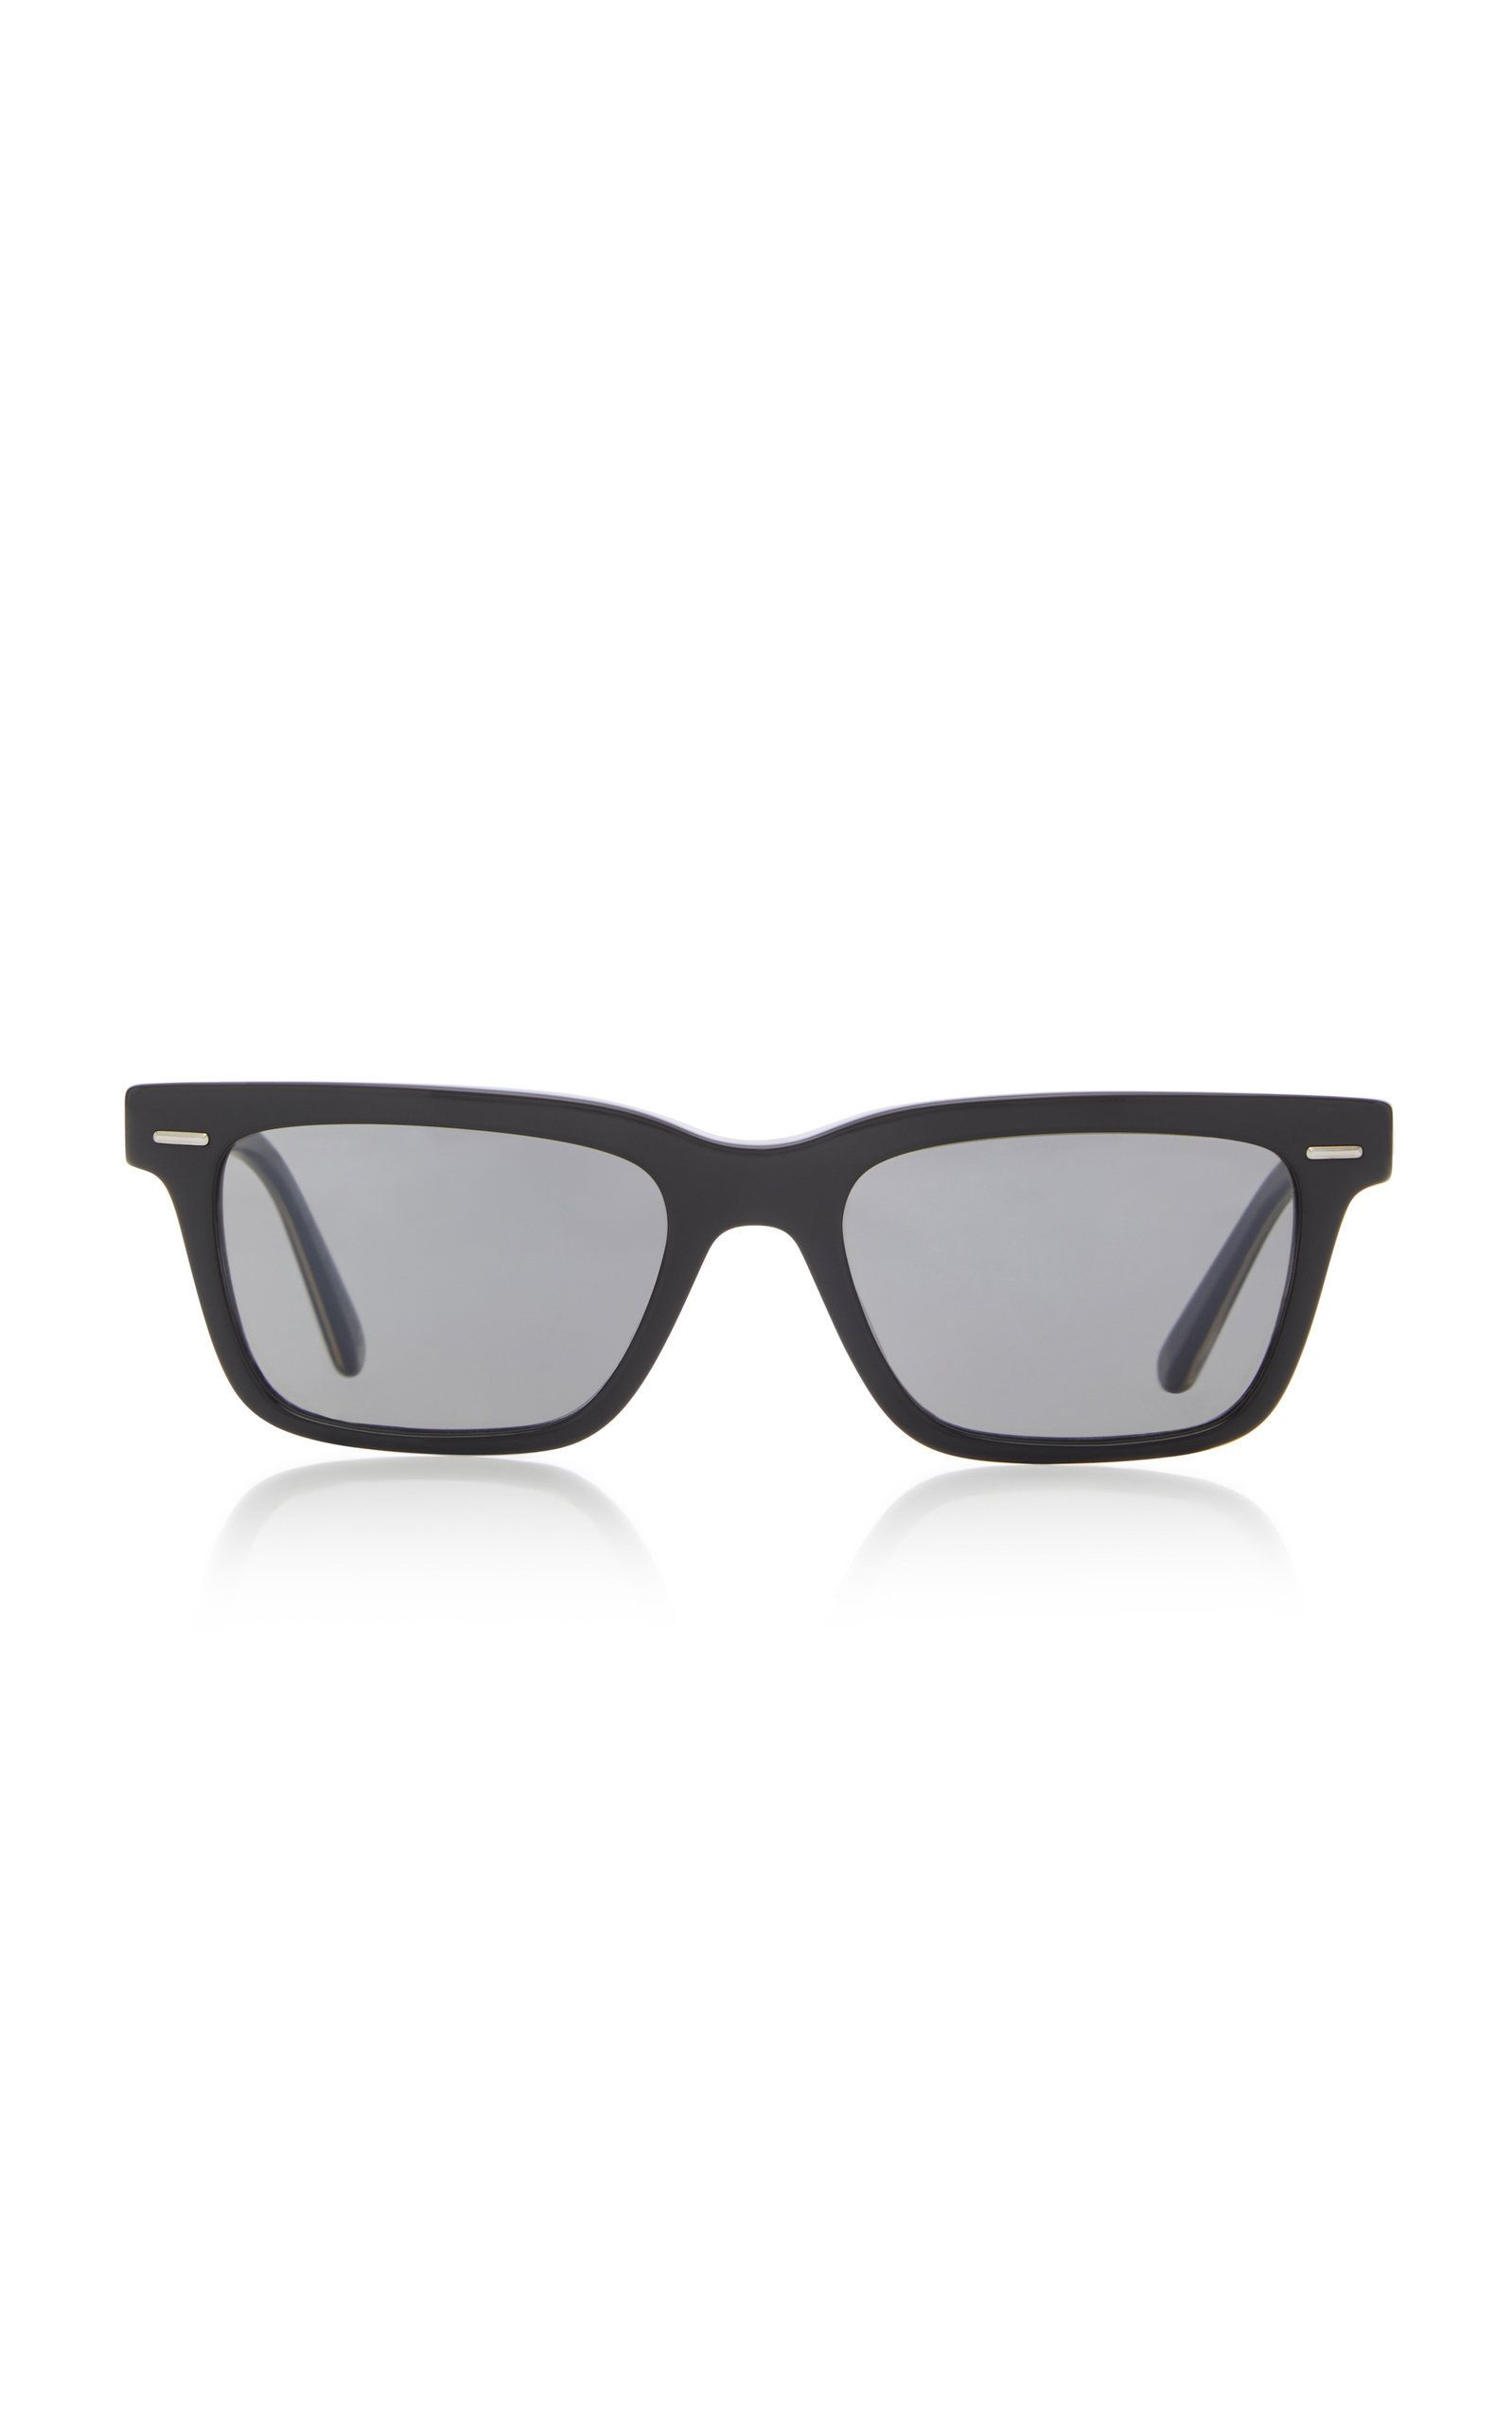 3ccd1bb5bb8 OLIVER PEOPLES BA CC SQUARE SUNGLASSES.  oliverpeoples